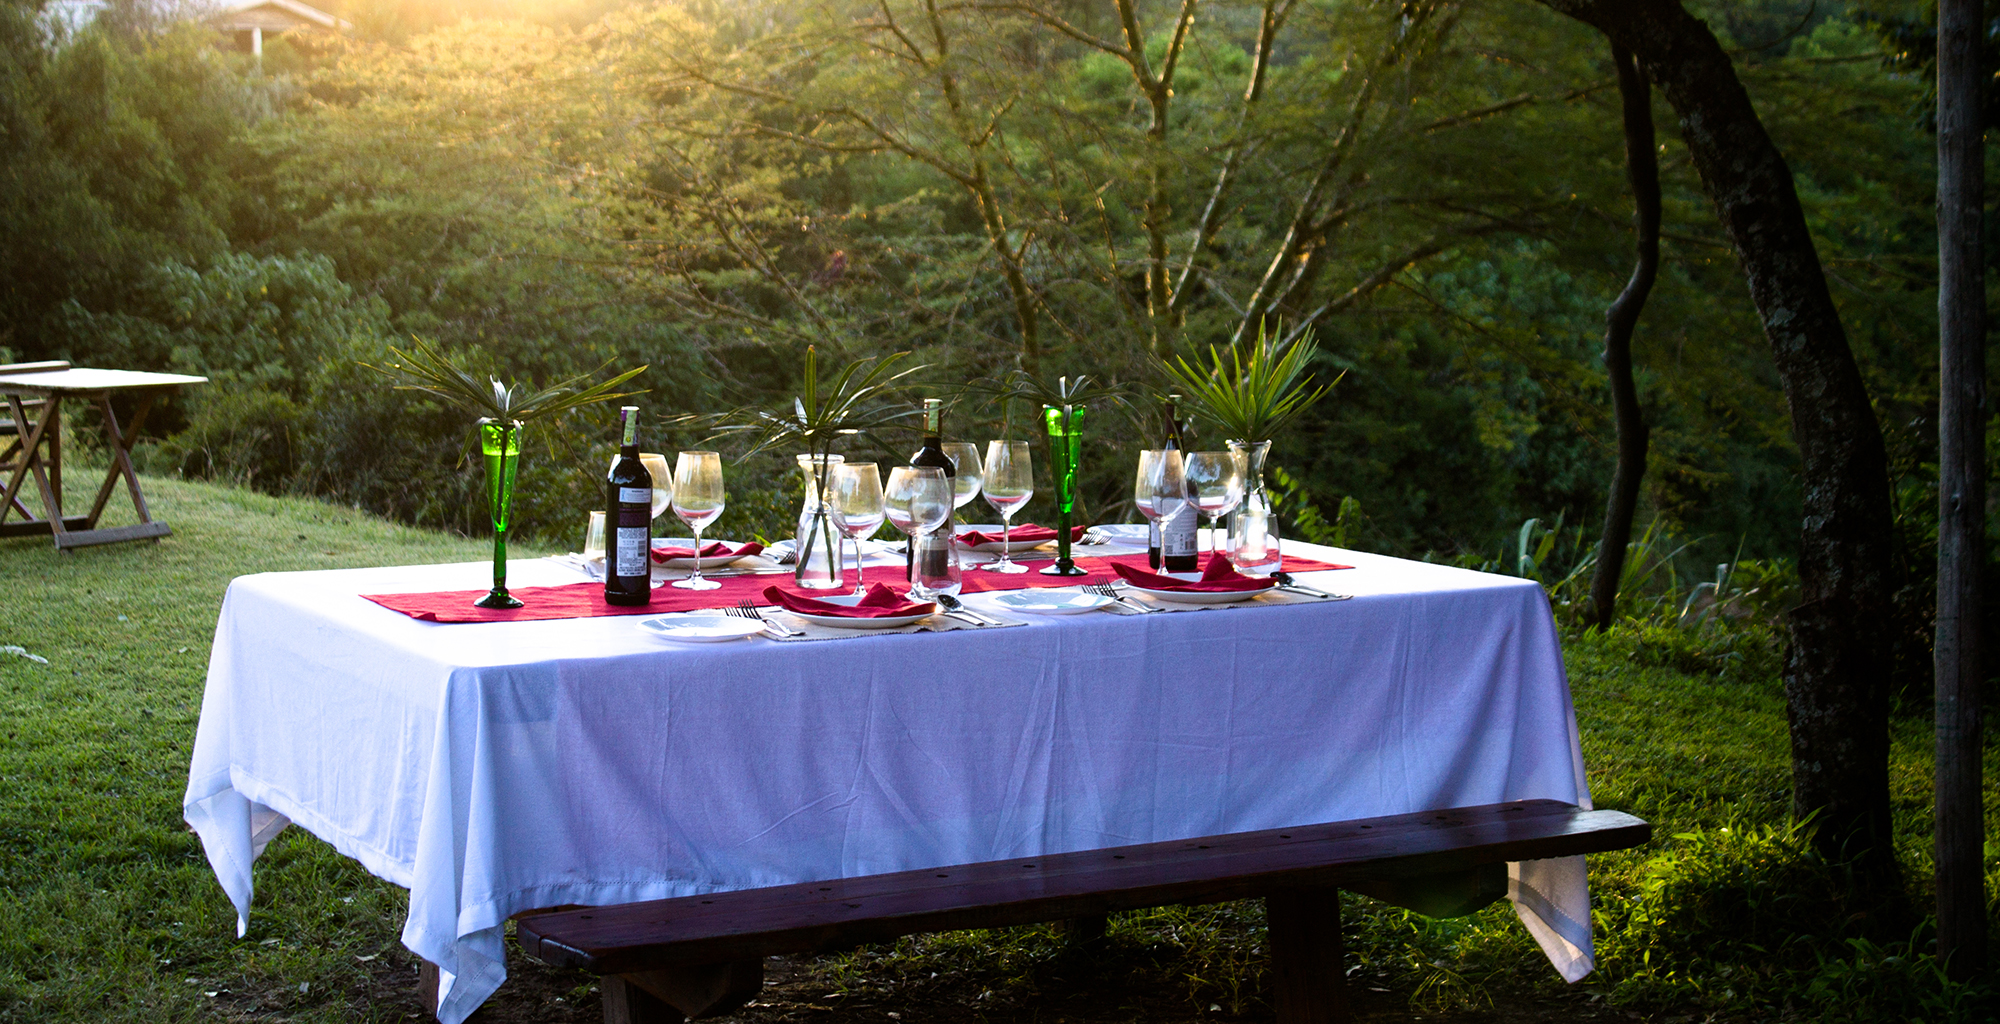 Kenya-Houses-In-The-Wild-Outdoor-Dining